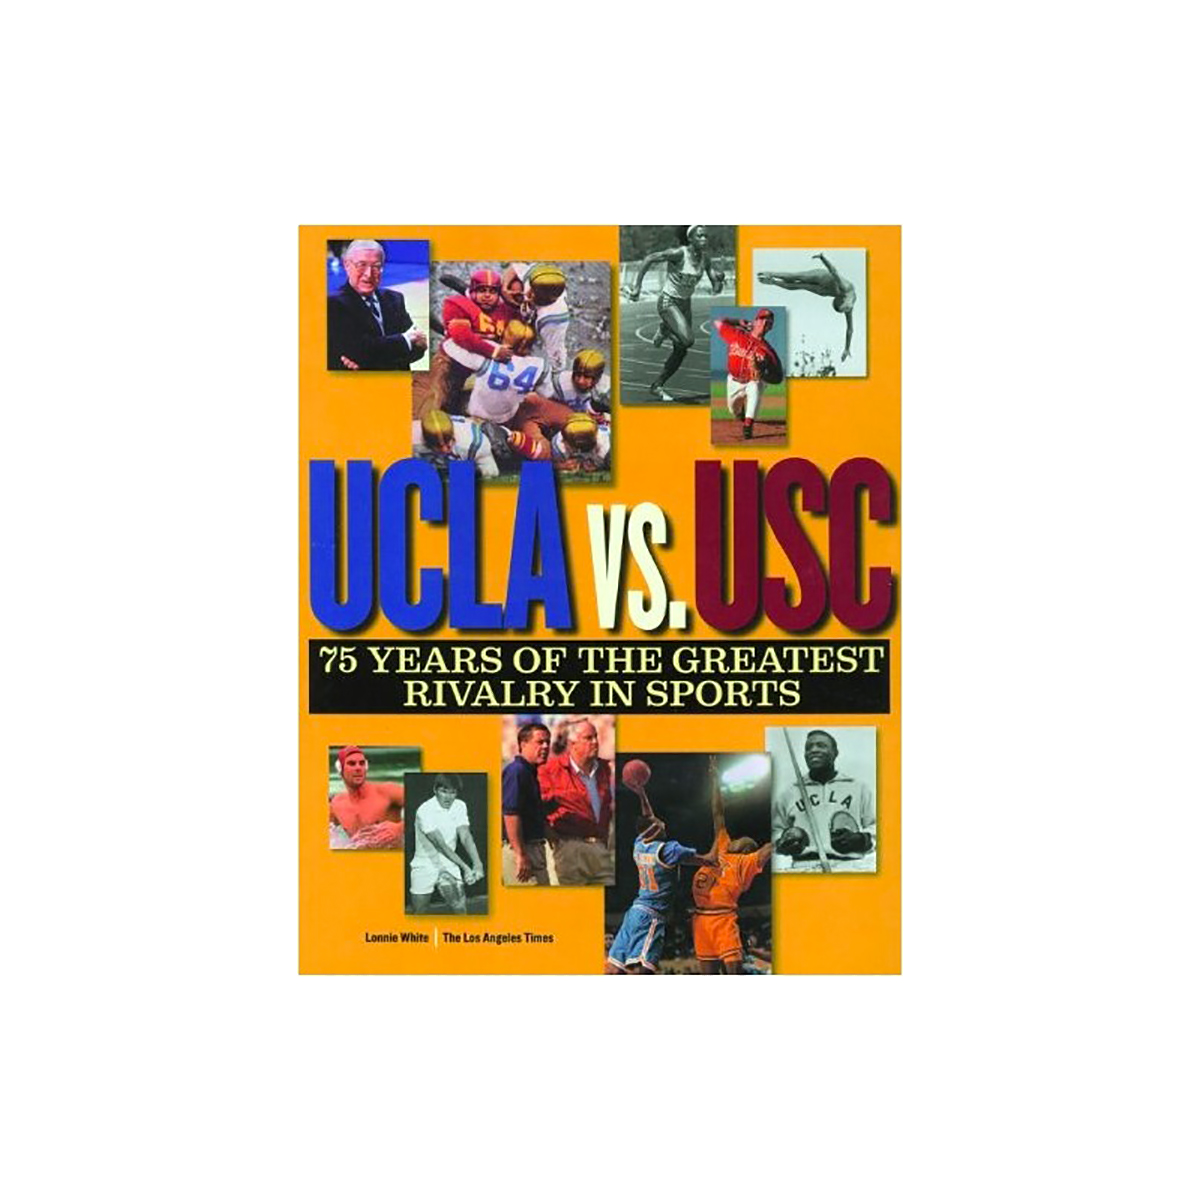 UCLA vs. USC - 75 Years of the Greatest Rivalry in Sports